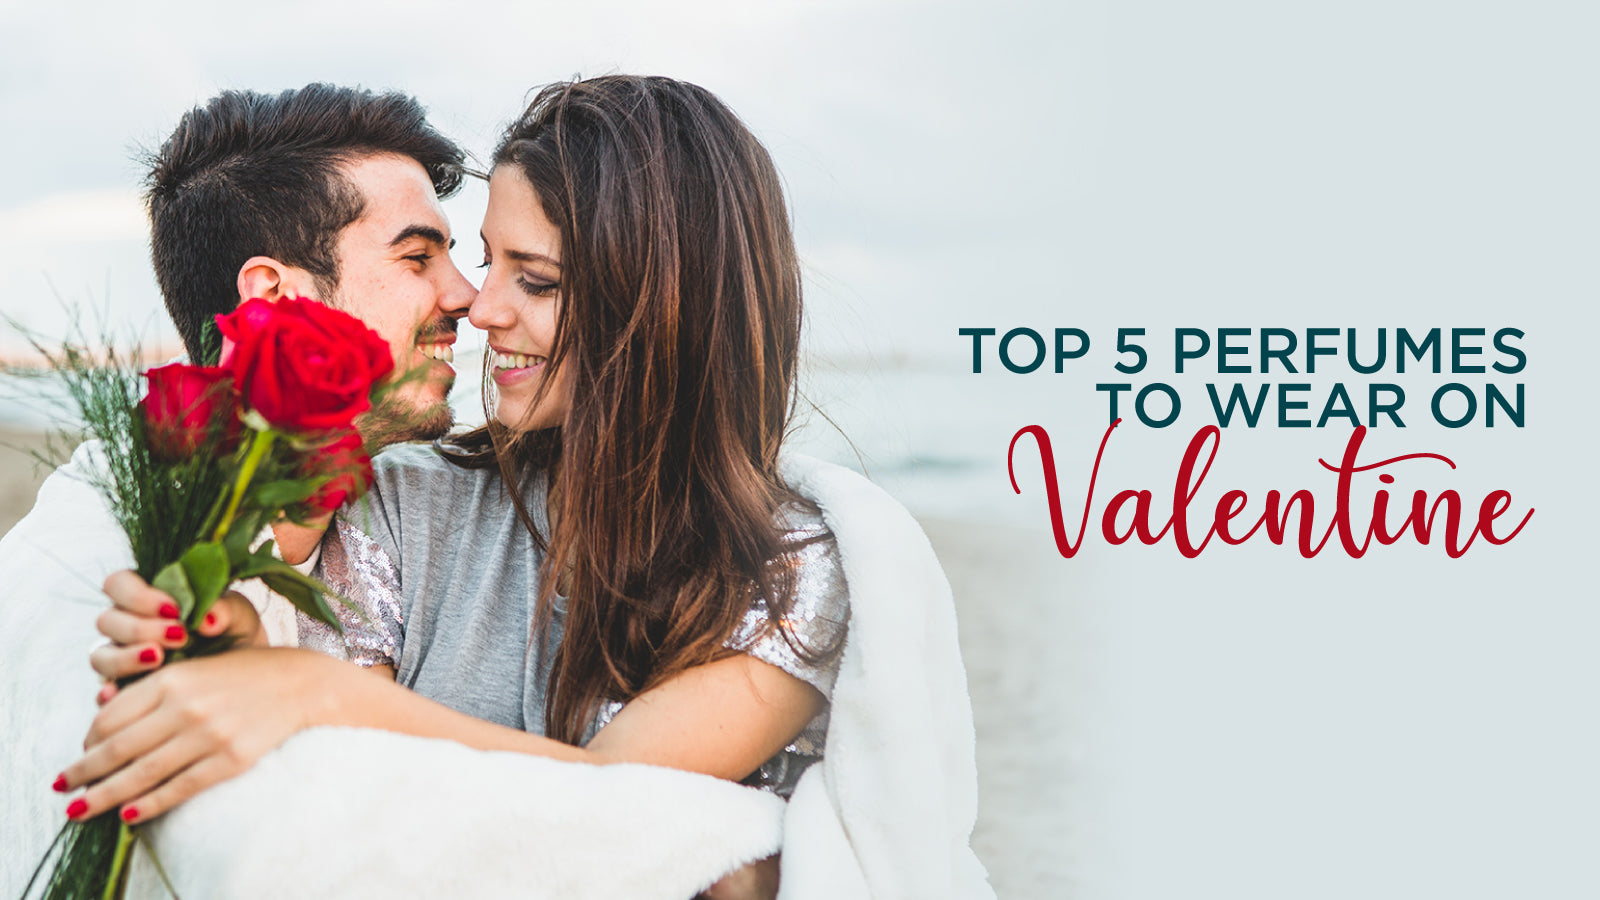 Top 5 Perfumes to Wear on Valentine's Day